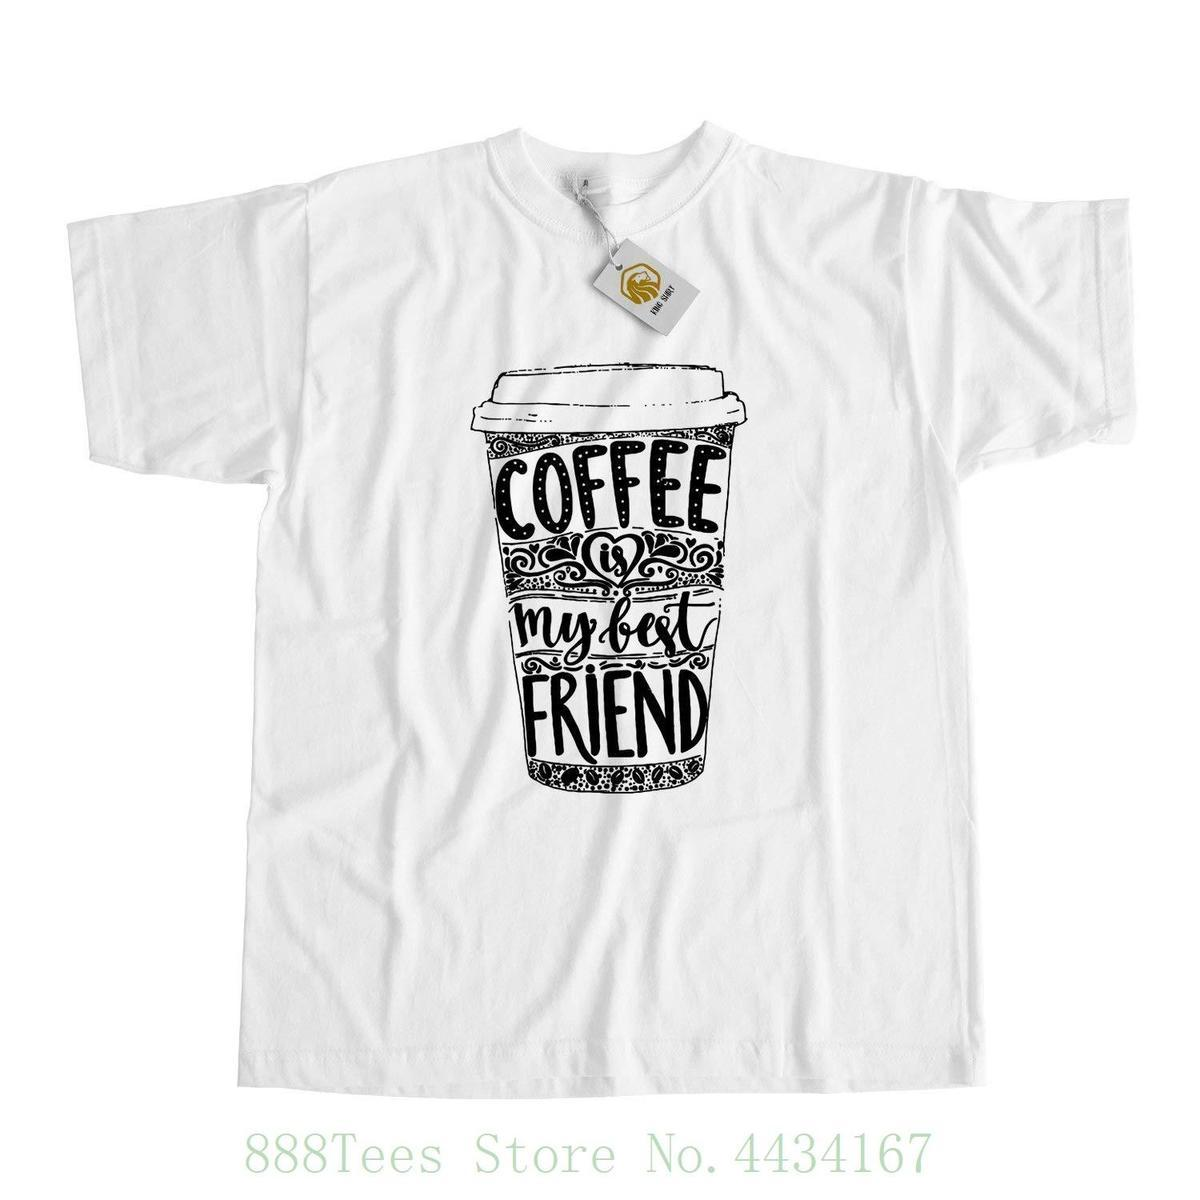 Coffee Maniac T Shirt , Original And Unique Shirt For Coffee Lover , Coffee  Is My Best Friend 2018 Latest